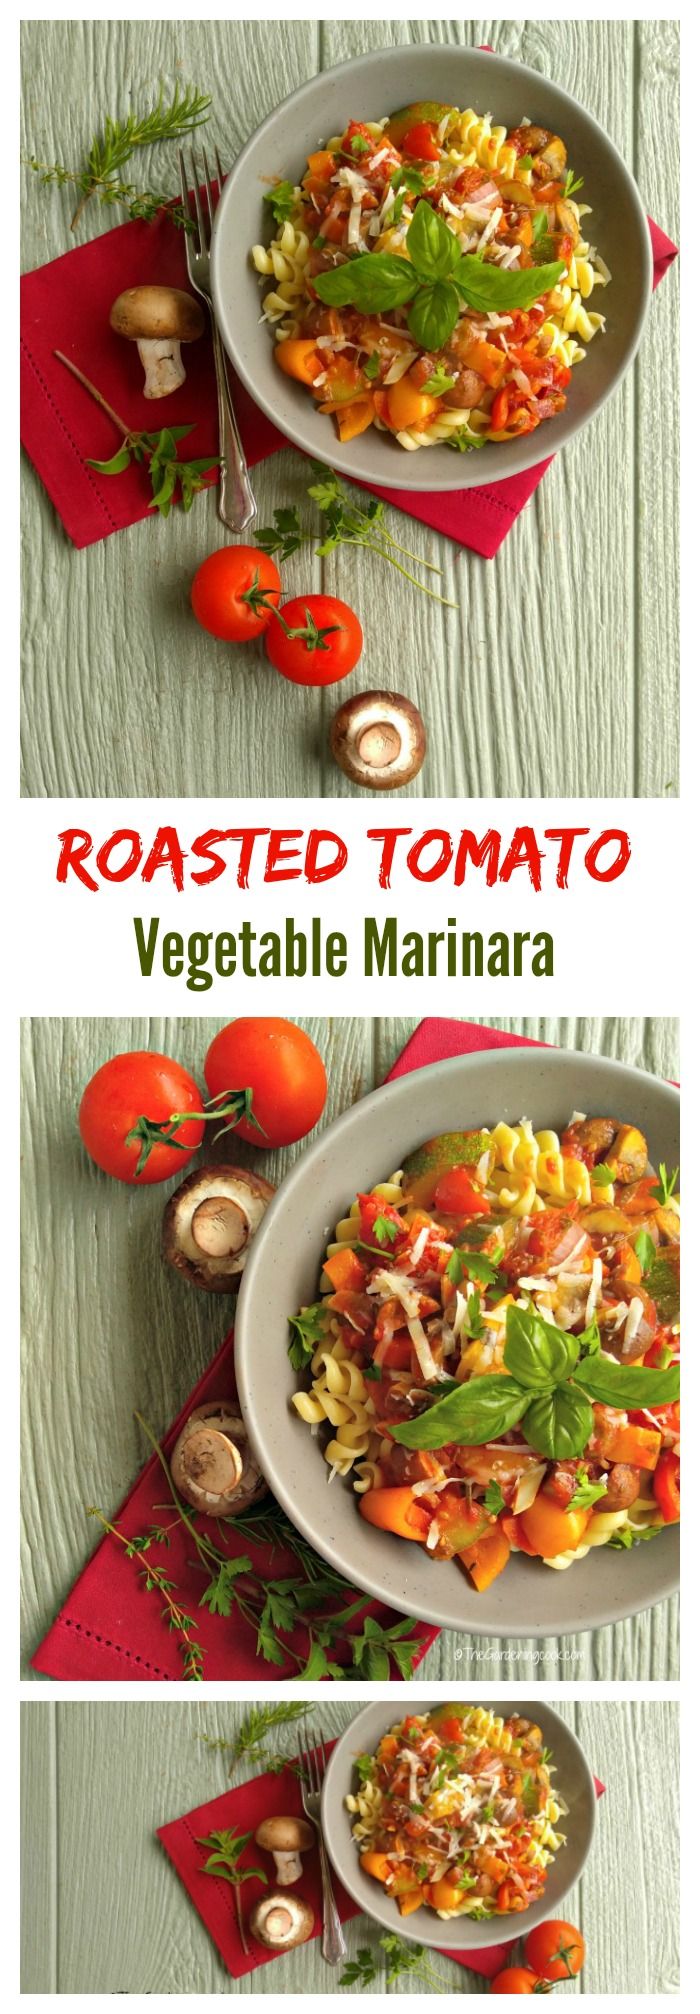 Chunky Roasted Tomato Vegetable Marinara with Pasta